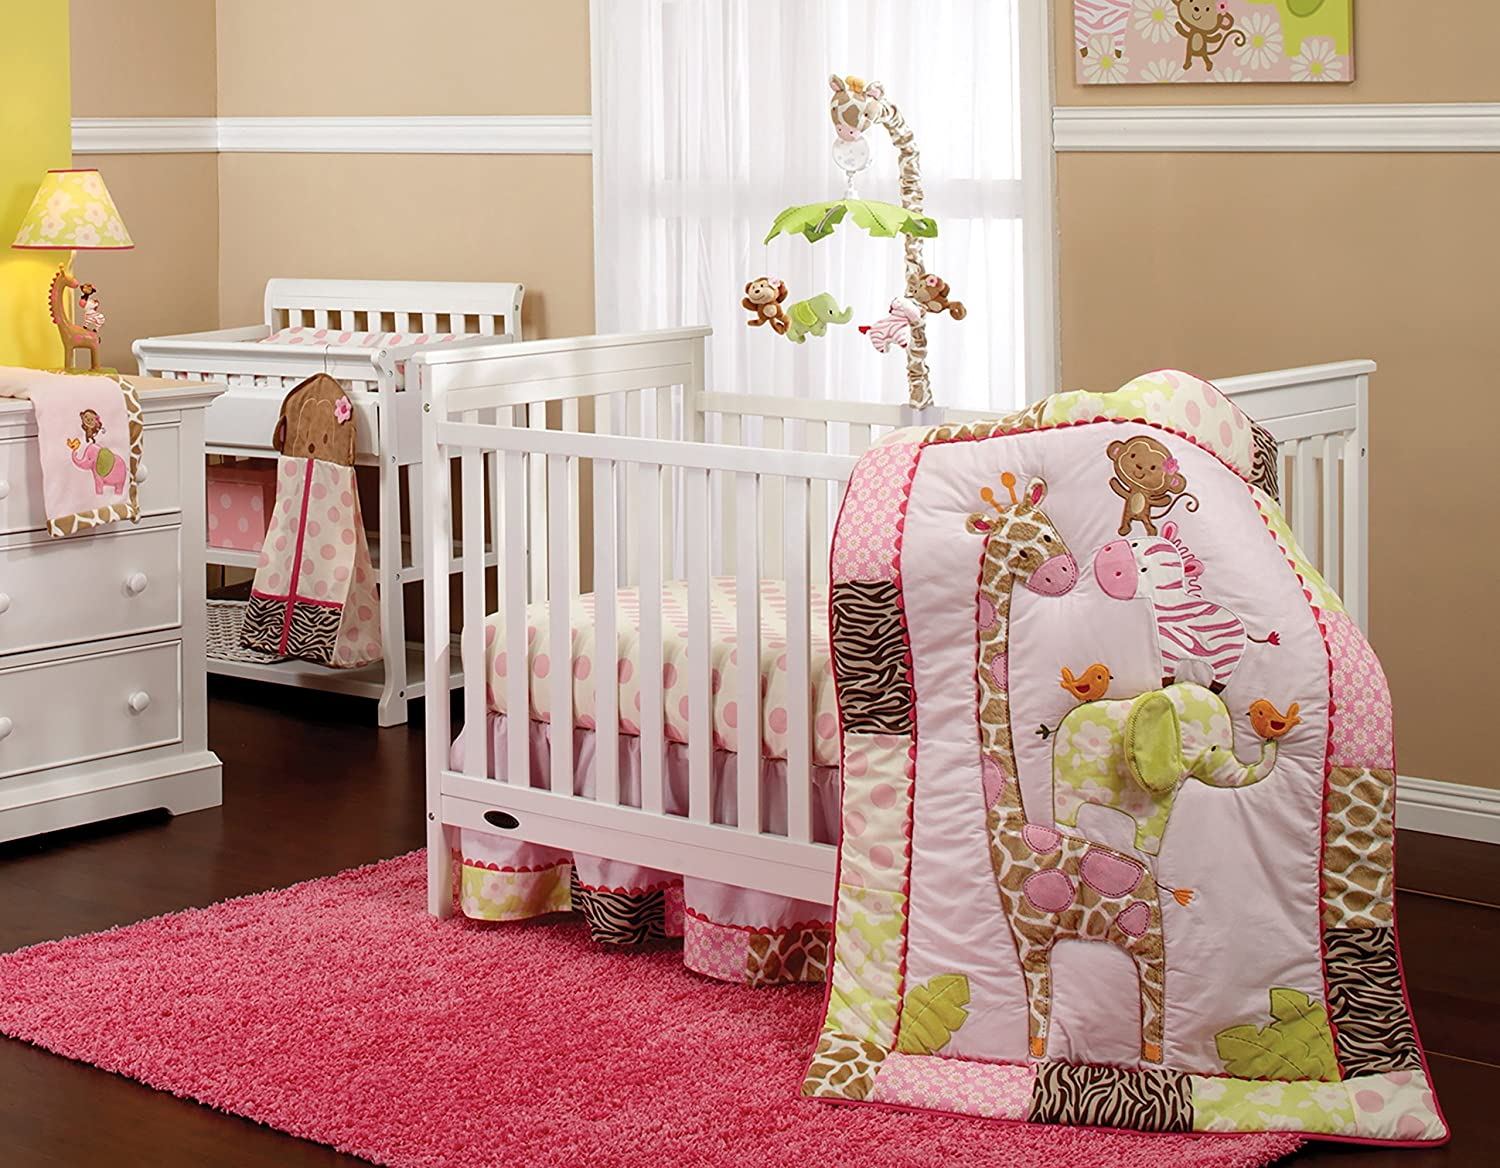 Carter's Max 55% OFF Jungle Recommendation Collection 7-Piece Nursery Set Pin Bedding Crib